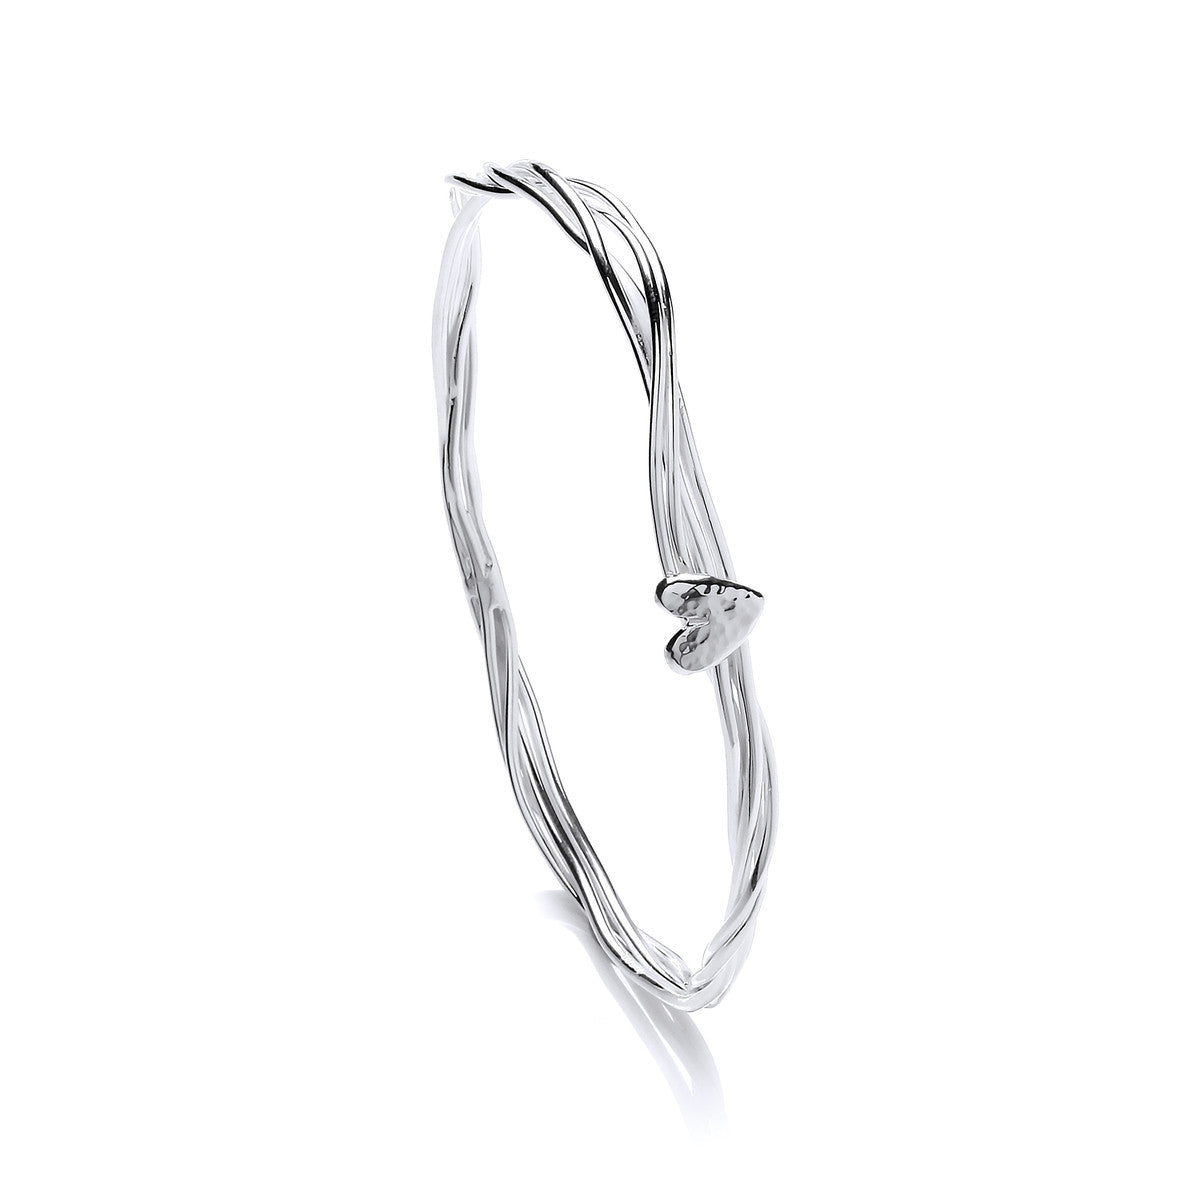 Stranded Heart Sterling Silver Bangle